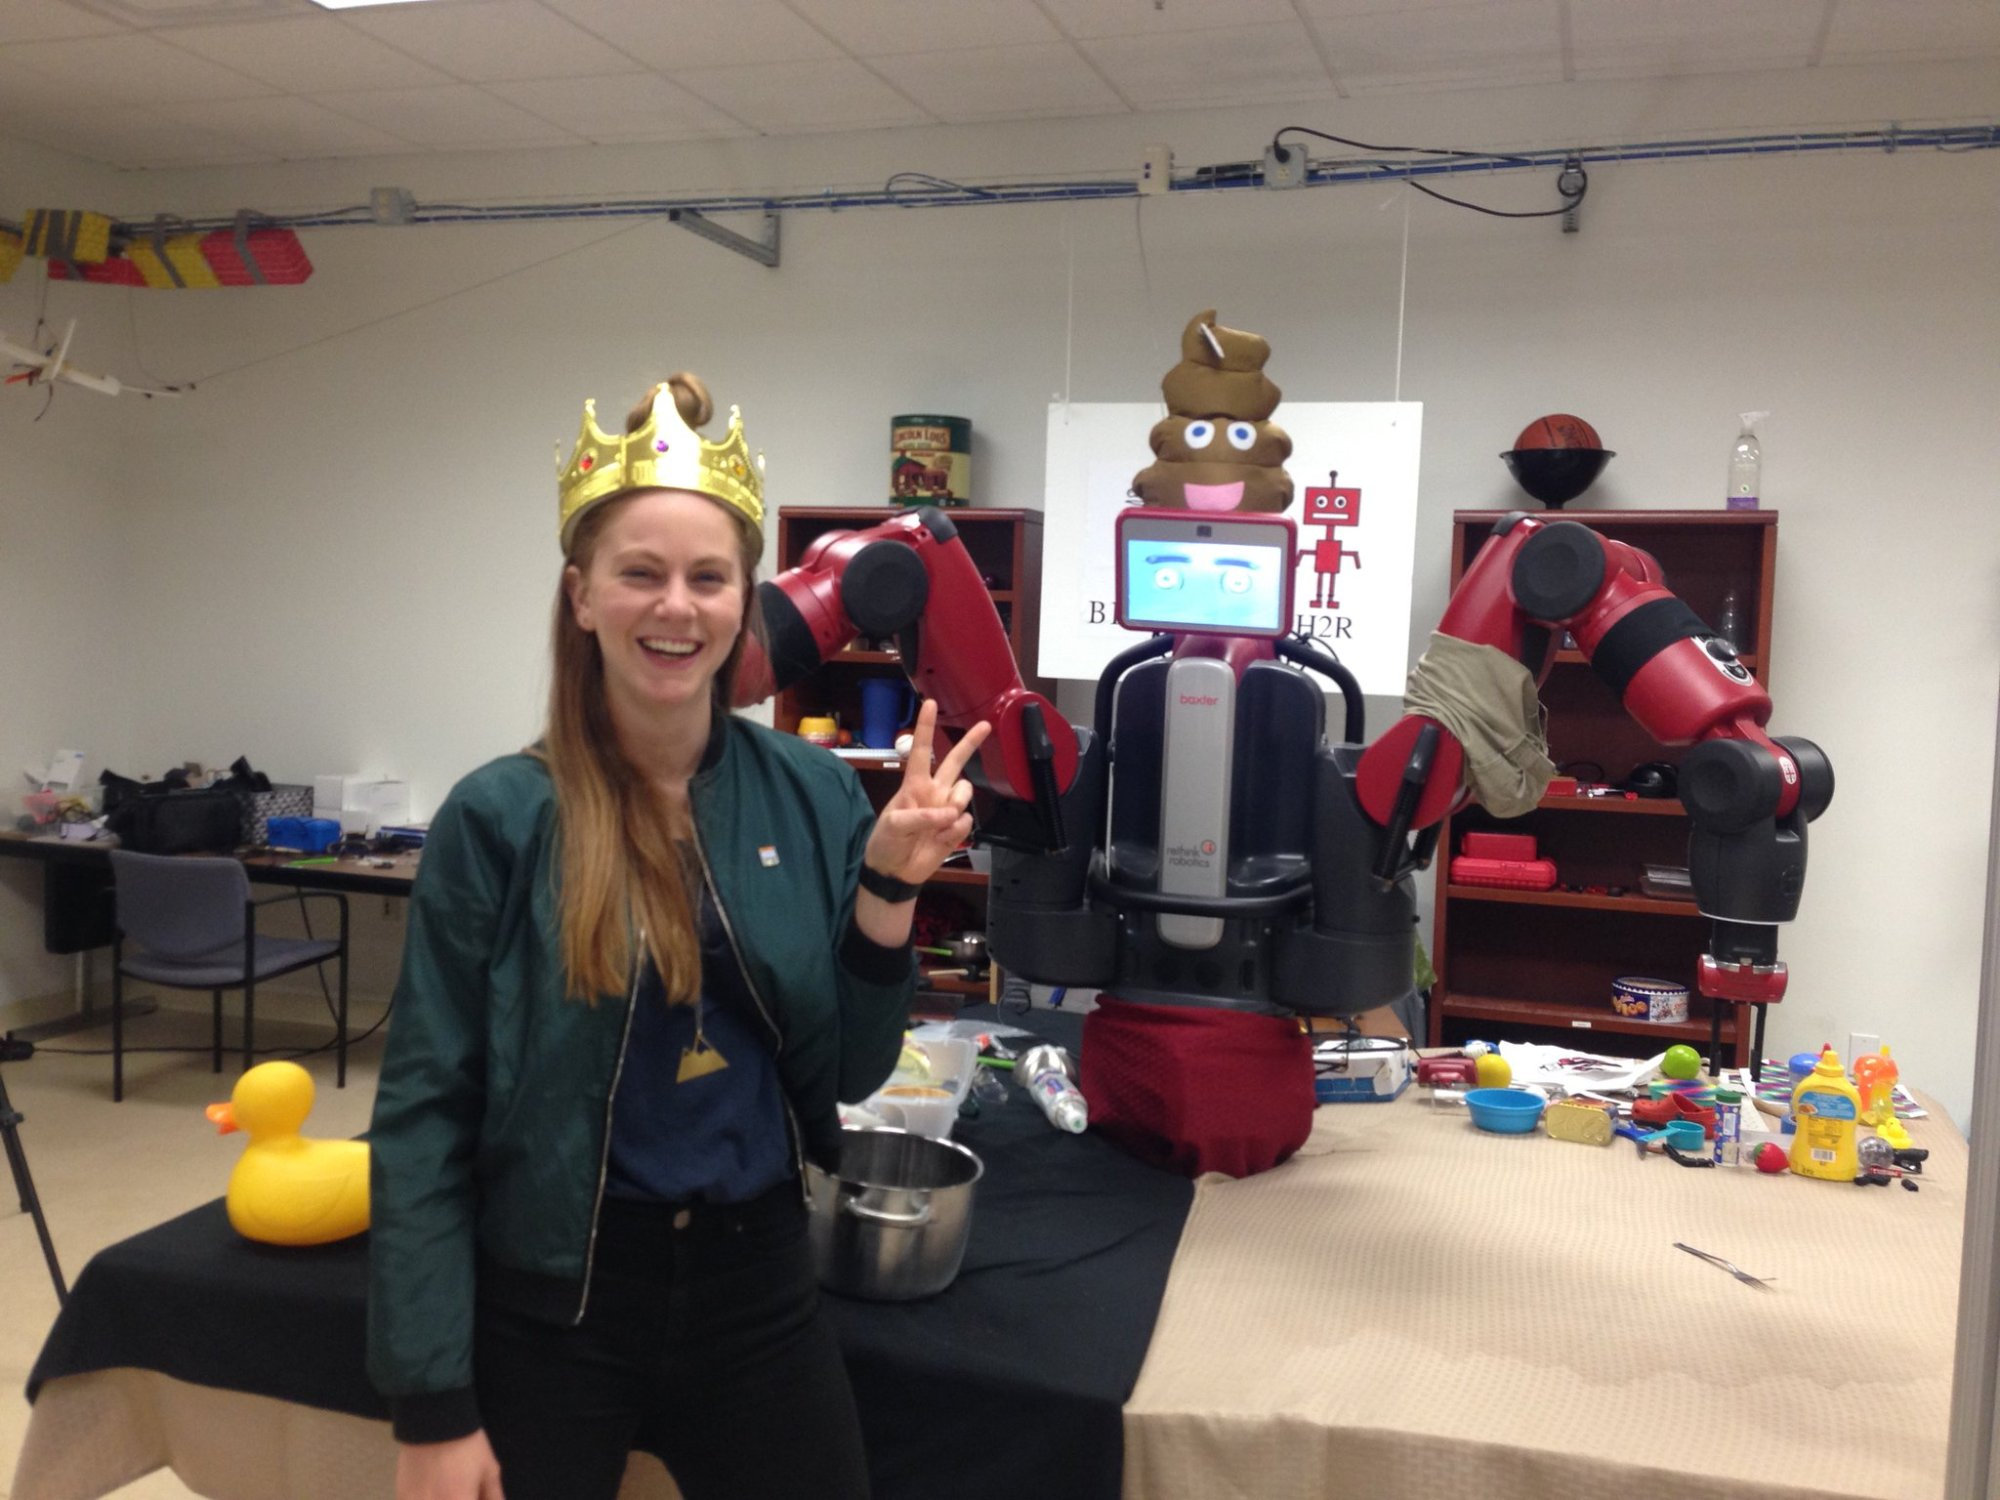 queen-of-robots